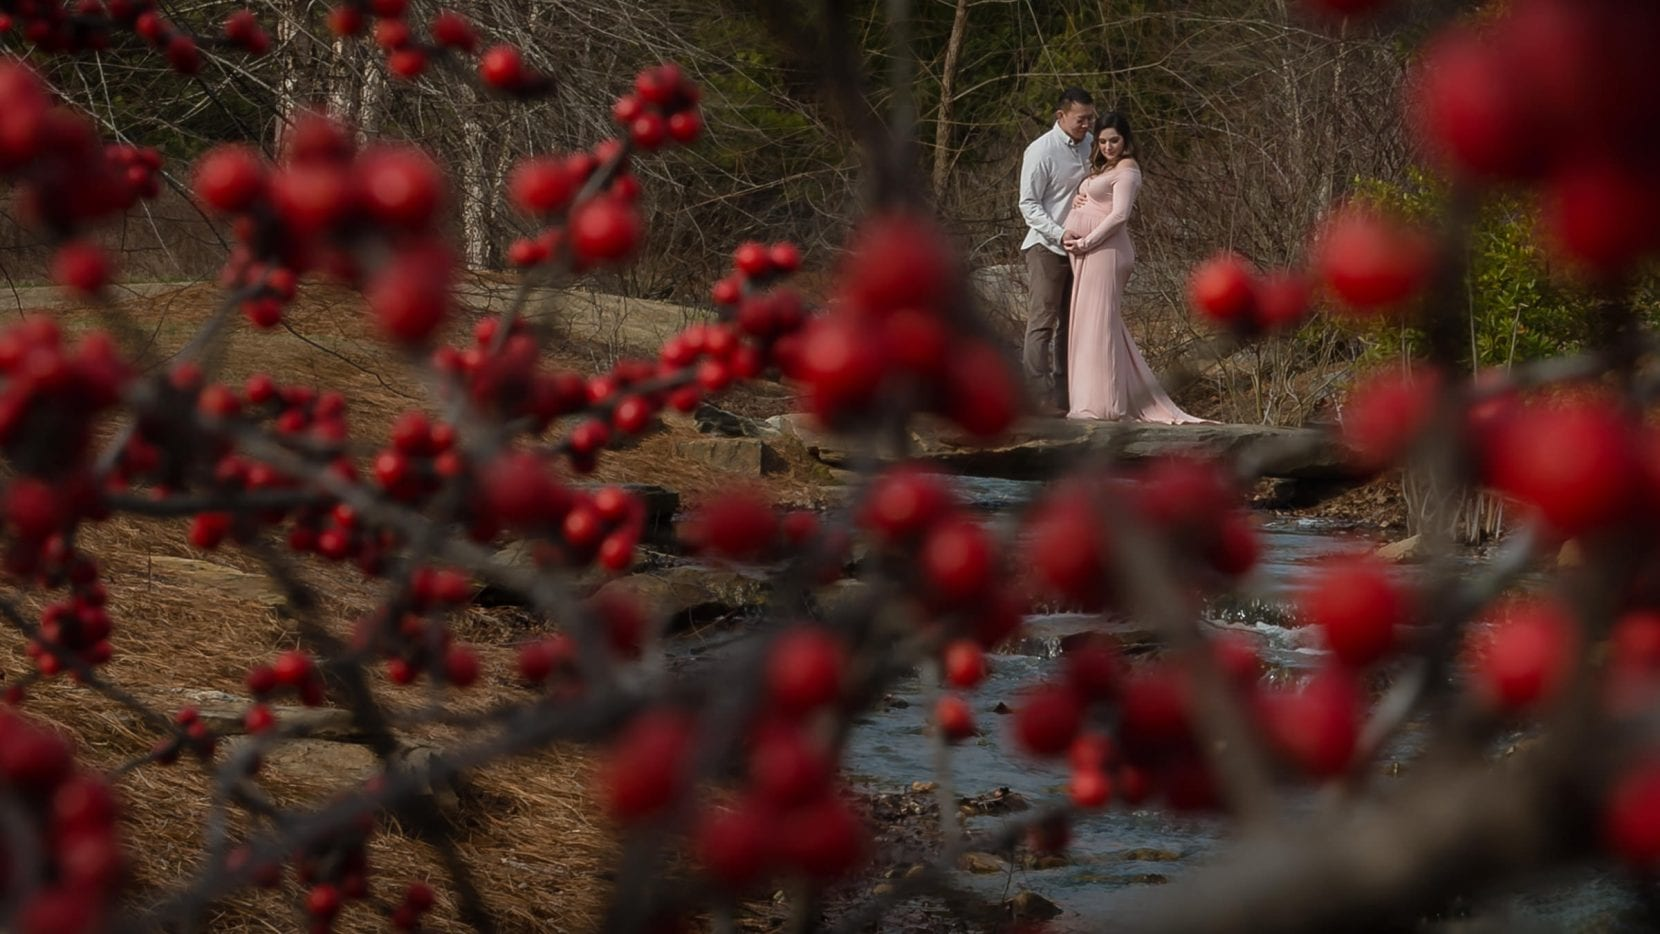 red berry winter maternity photo